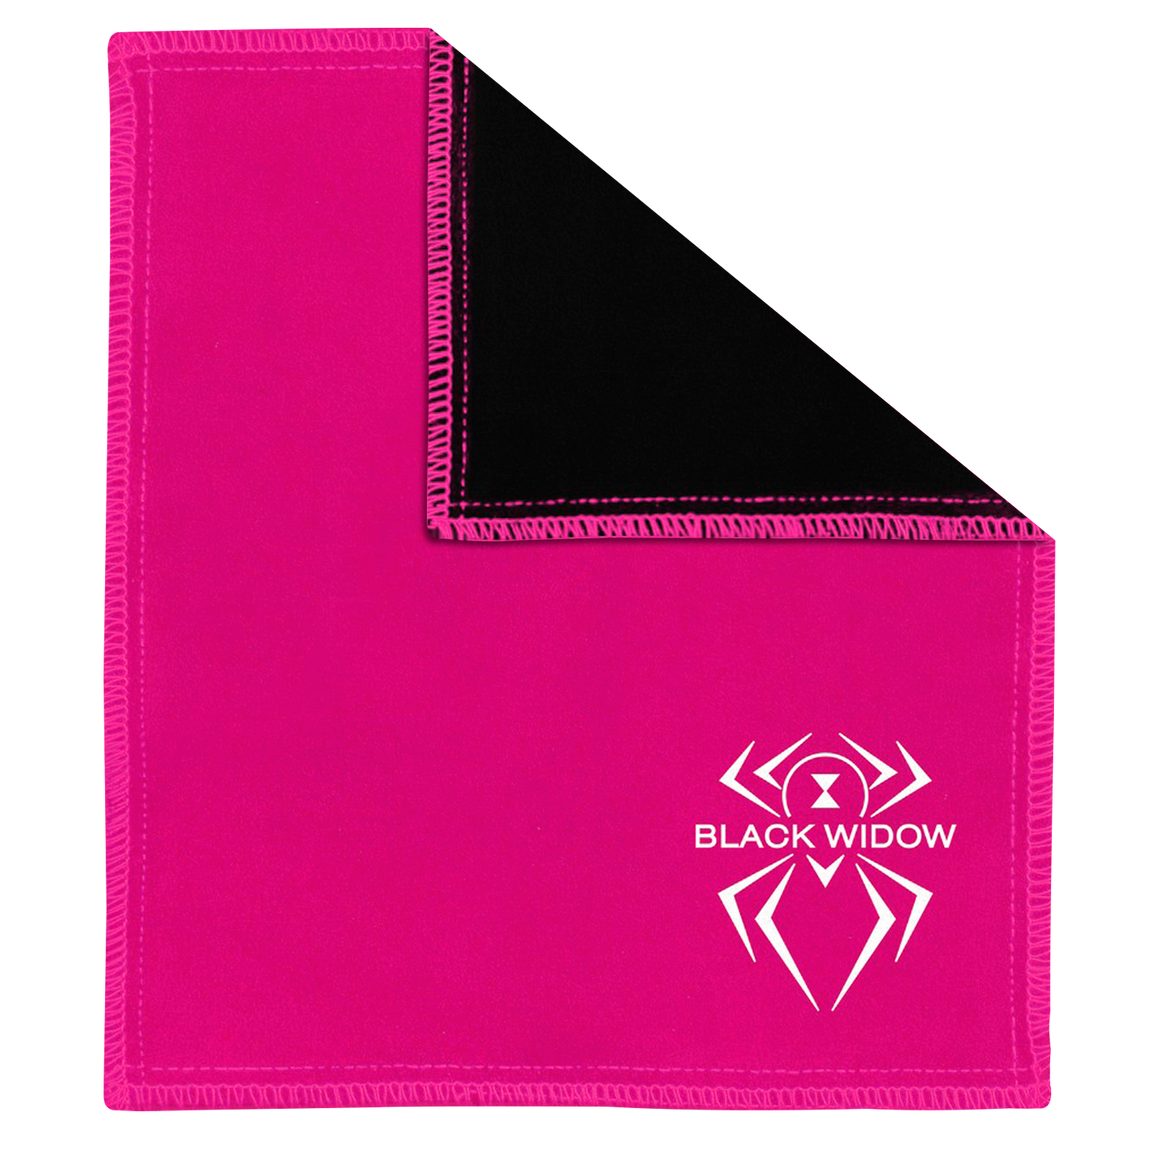 Hammer Black Widow Pink Shammy Pad/Towel | Pink